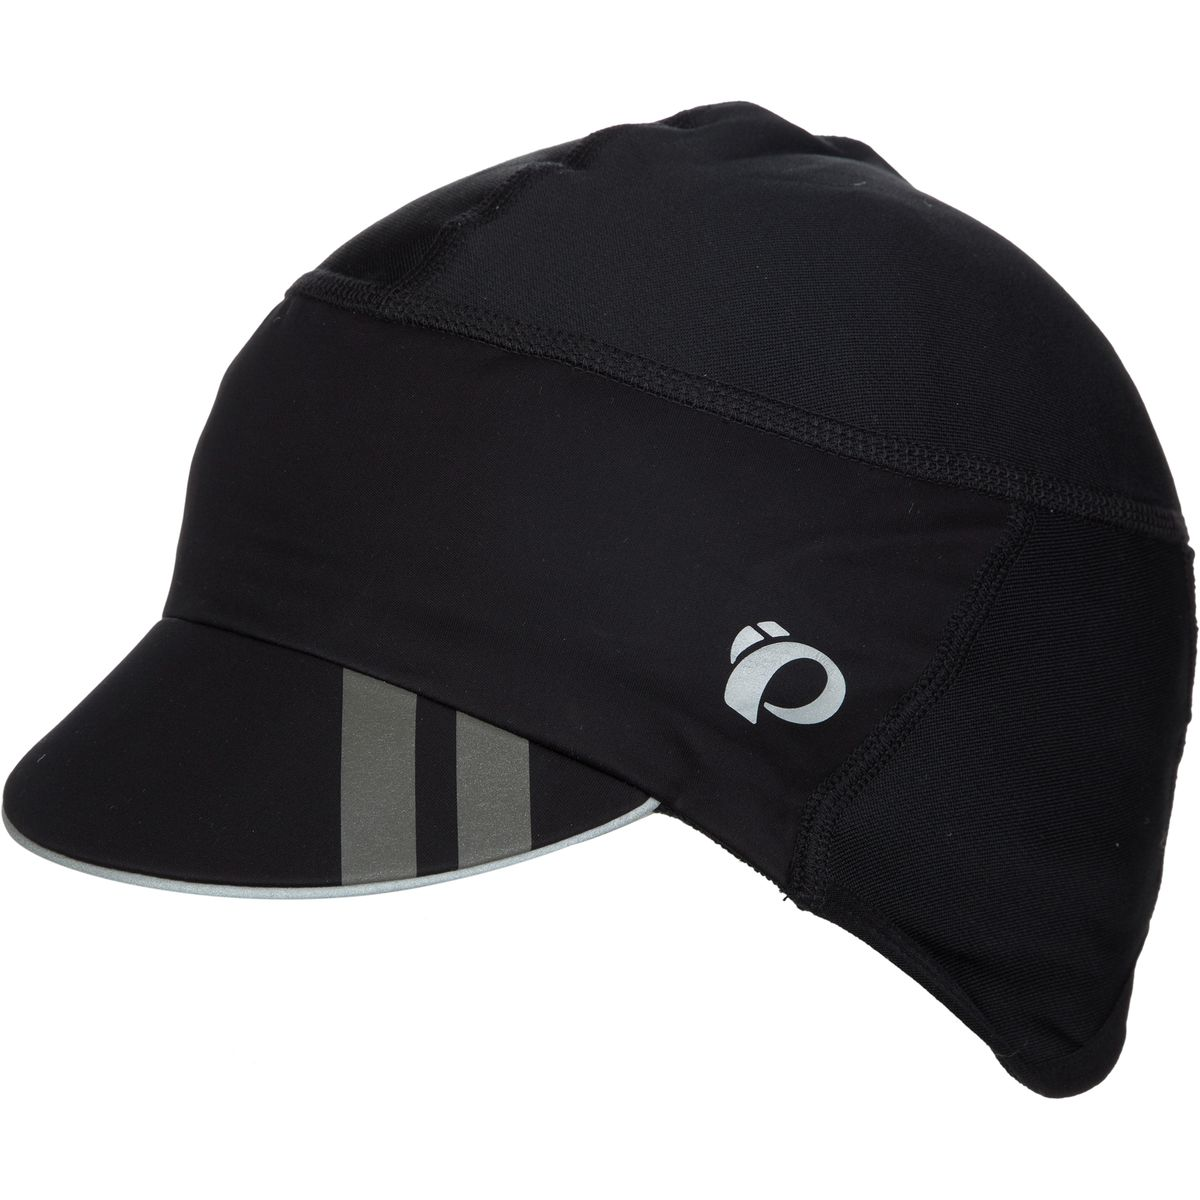 Pearl Izumi Barrier Cycling Cap Competitive Cyclist